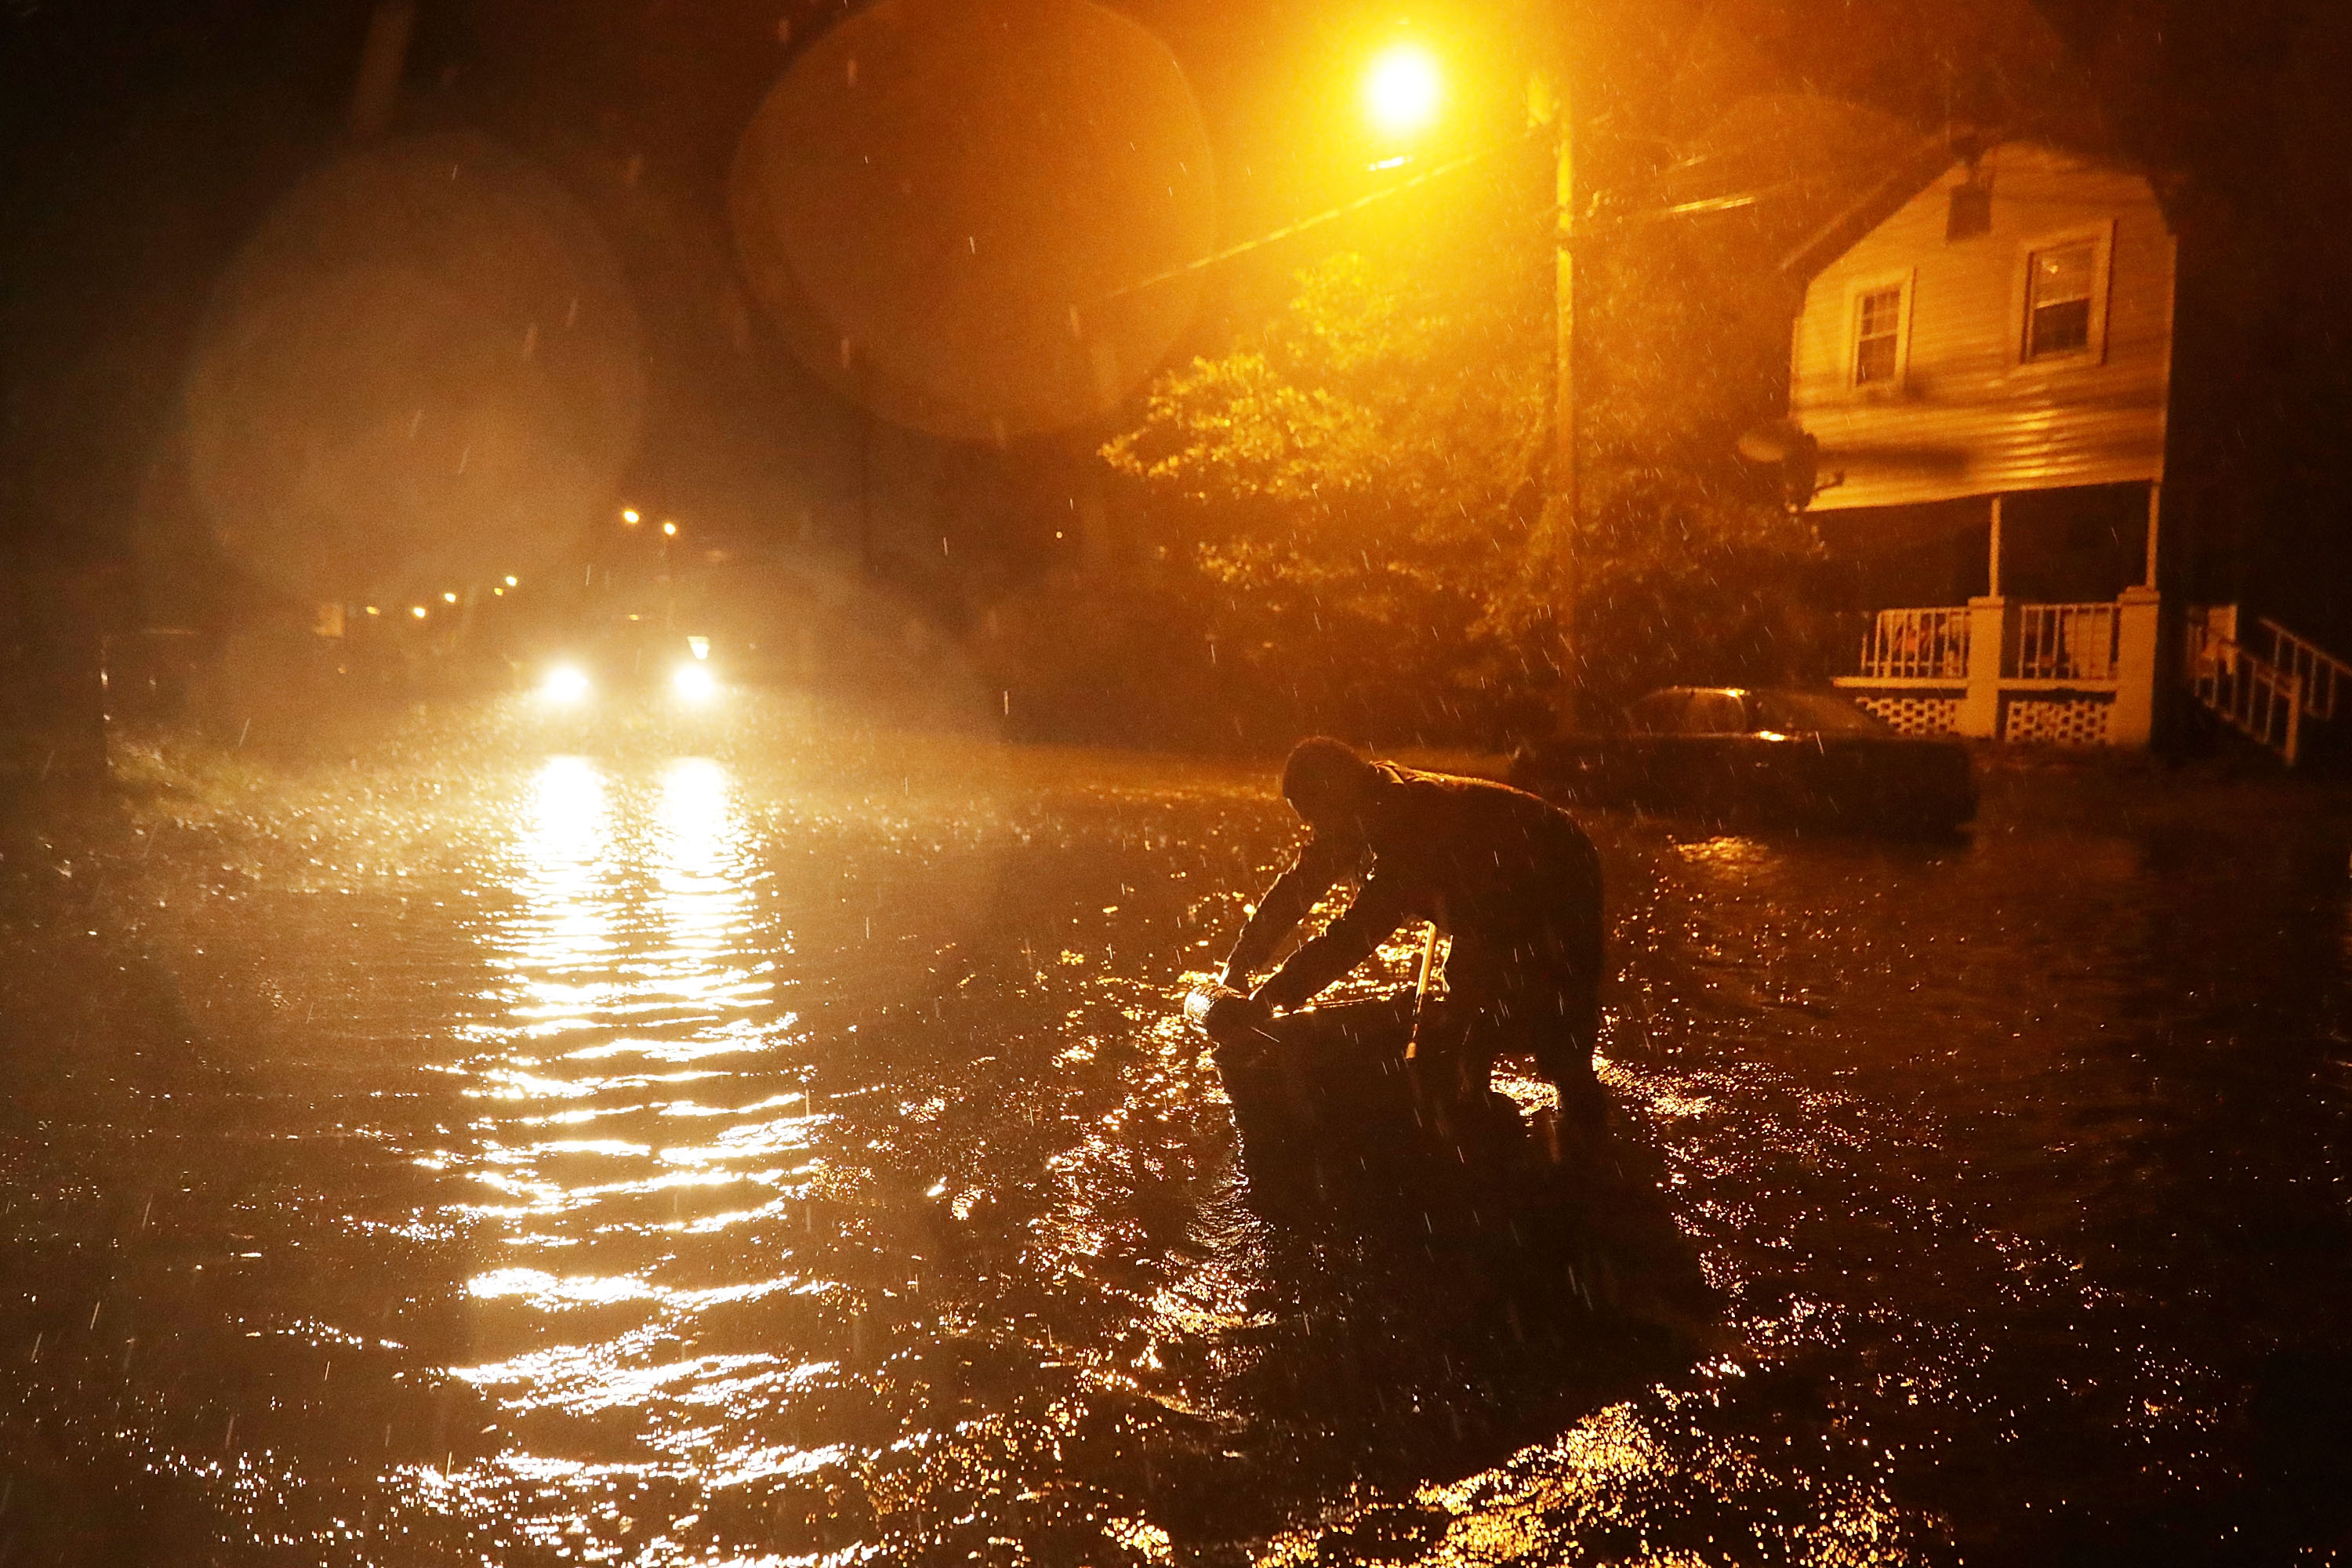 Michael Nelson floats in a boat made from a metal tub and fishing floats after the Neuse River went over its banks and flooded his street during Hurricane Florence September 13, 2018 in New Bern, North Carolina.